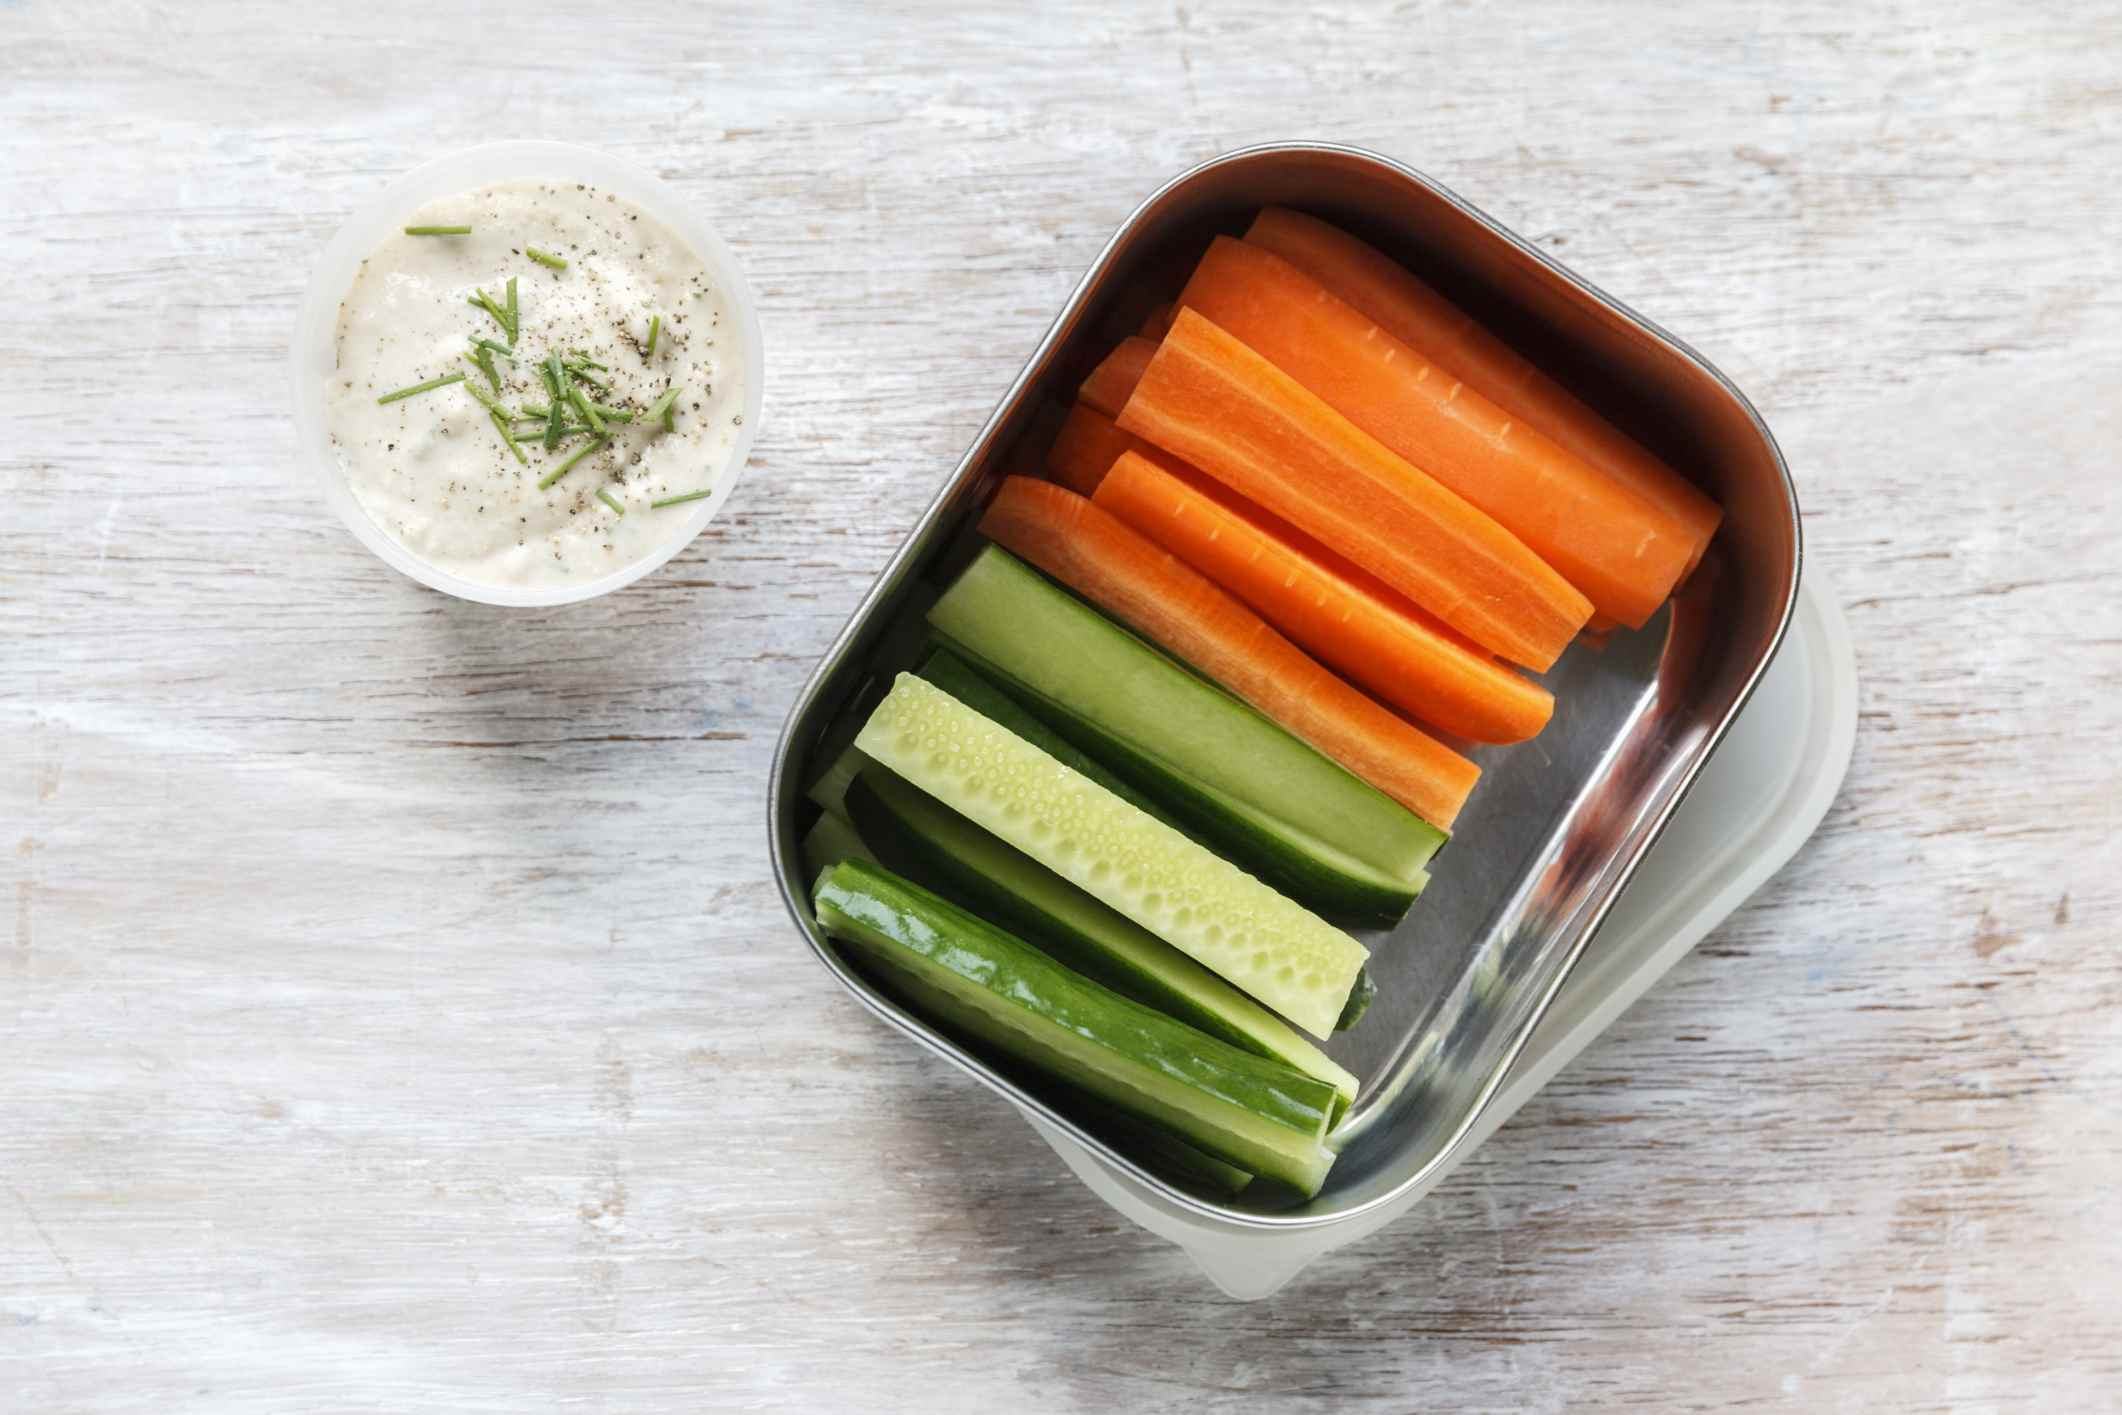 Carrots, zucchini and veggie dip make a healthy snack for work.